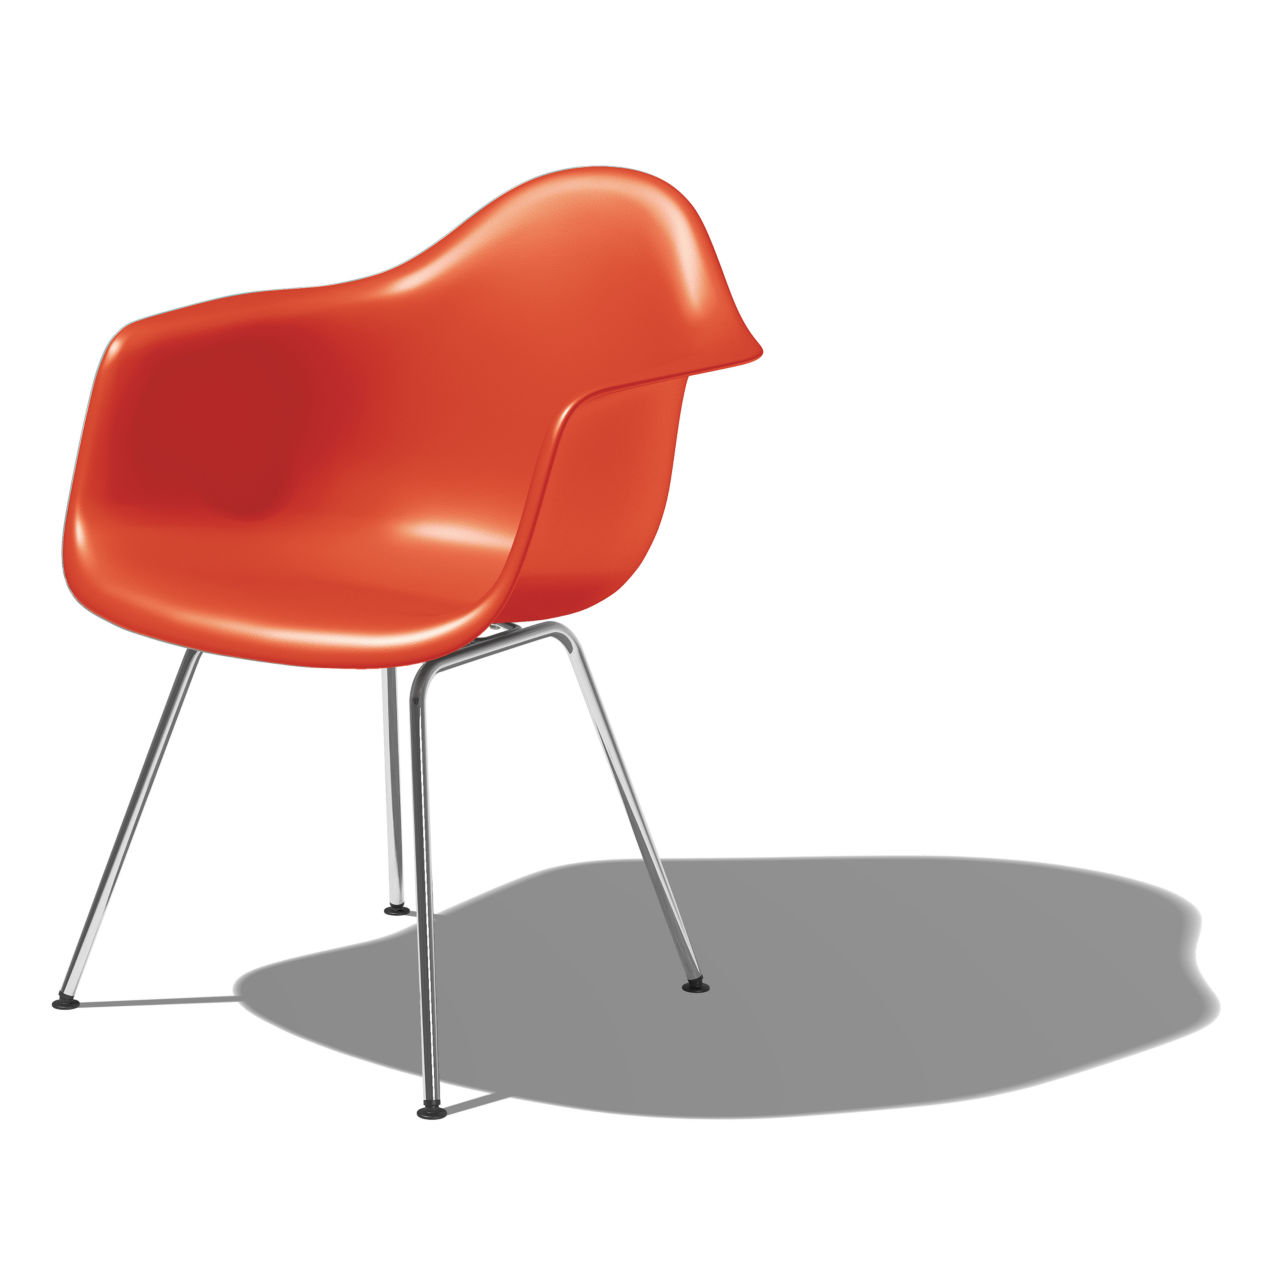 Eames Molded Plastic Armchair with 4 Leg Base in Red Orange by Herman Miller